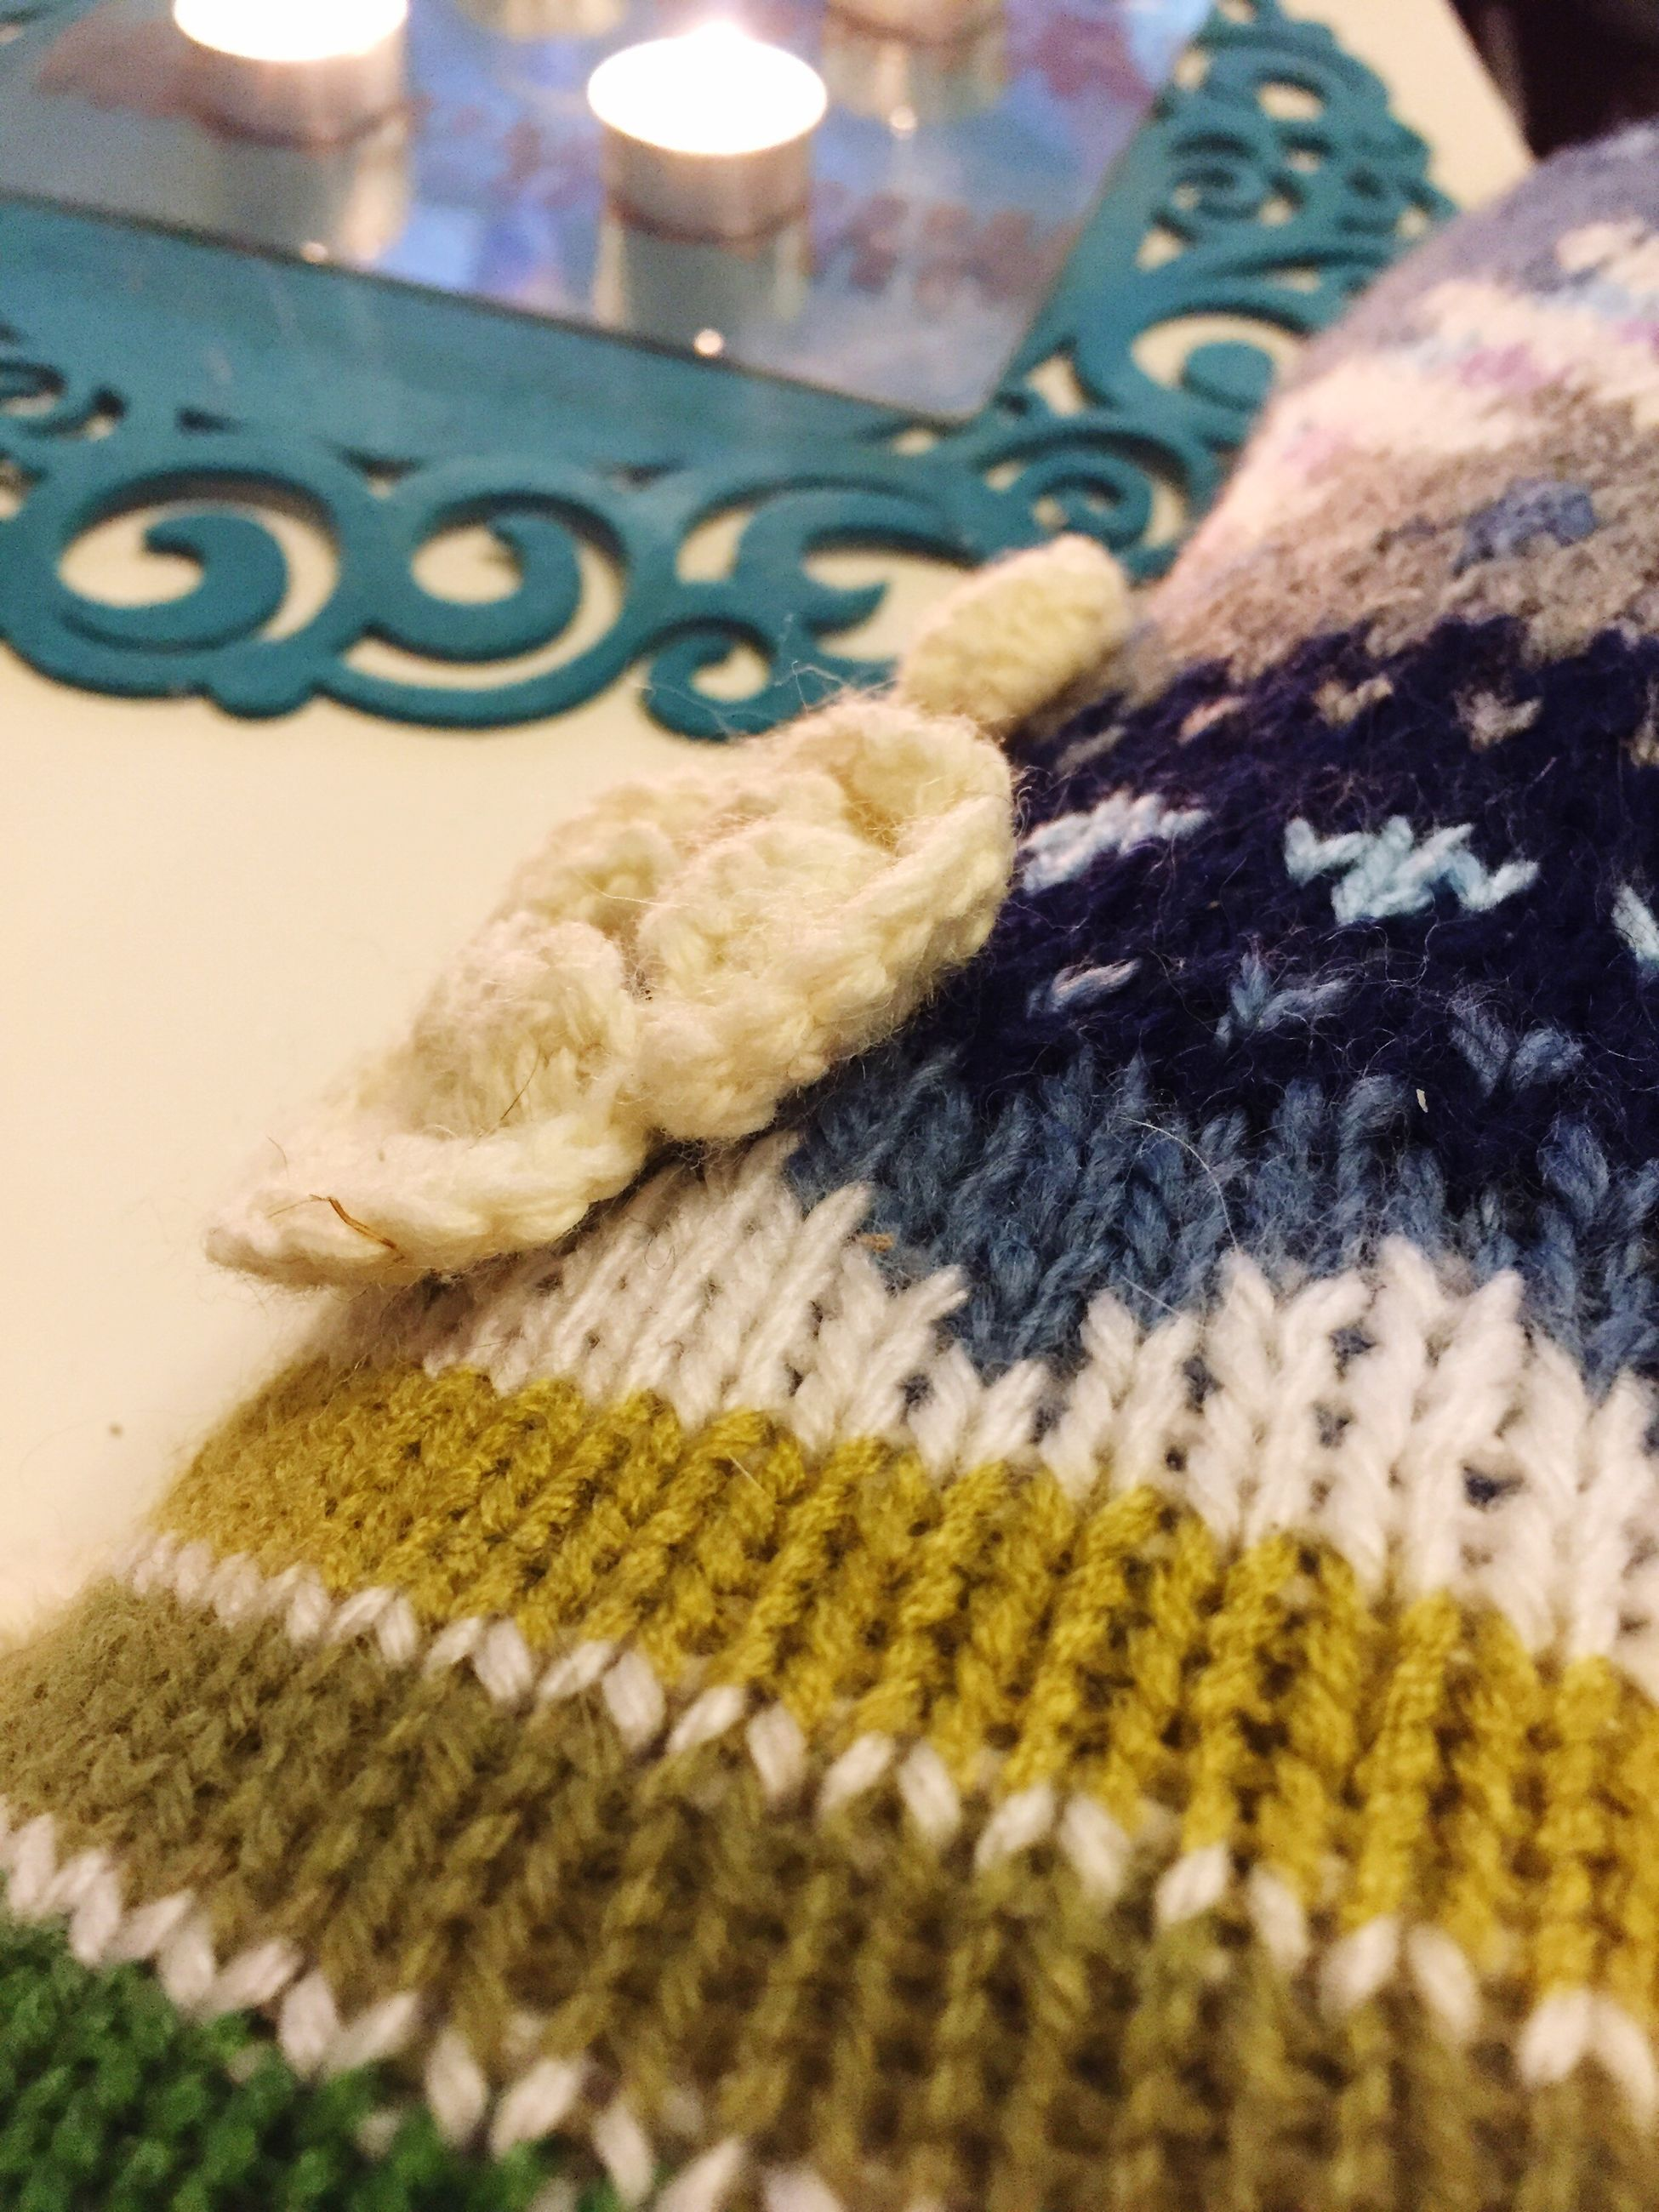 indoors, close-up, knitted, no people, day